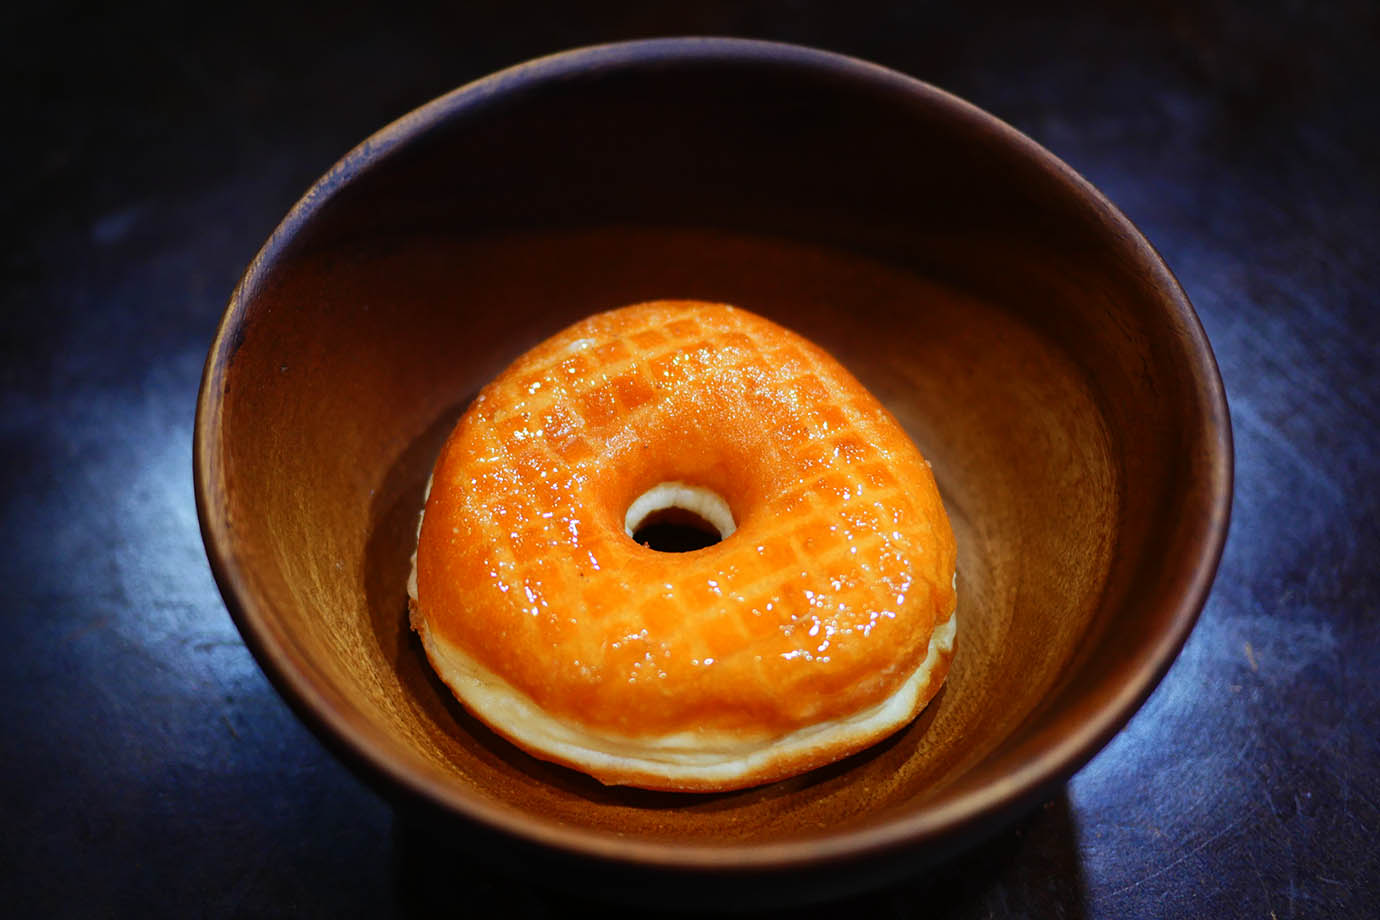 mister-donut-is-delicious5